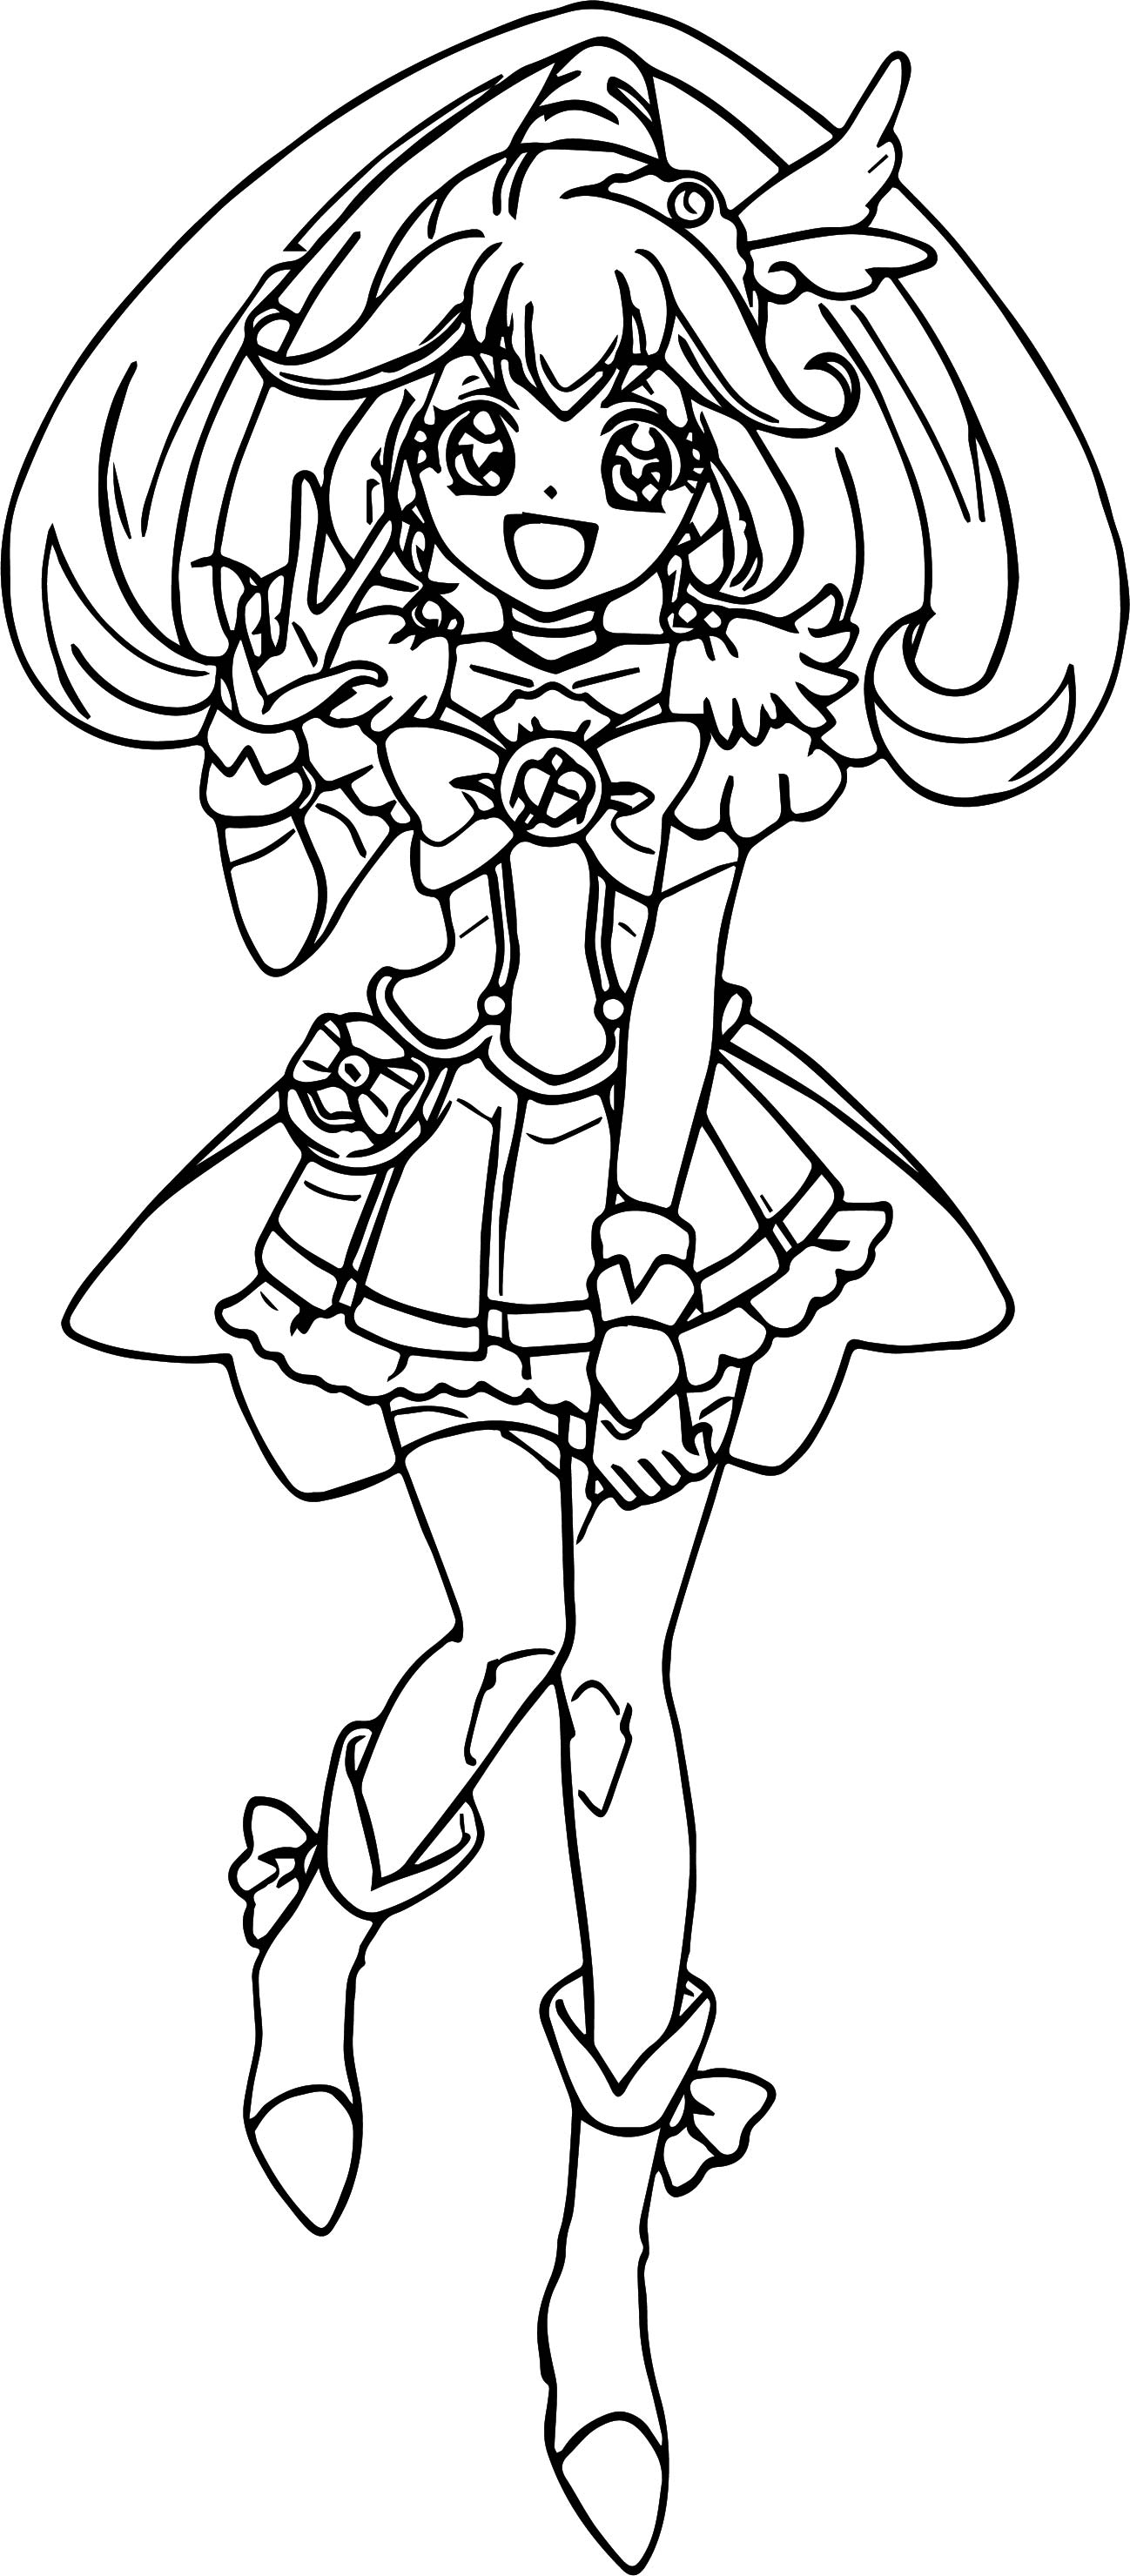 Glitter force characters coloring pages ~ Glitter Force Pages Coloring Pages